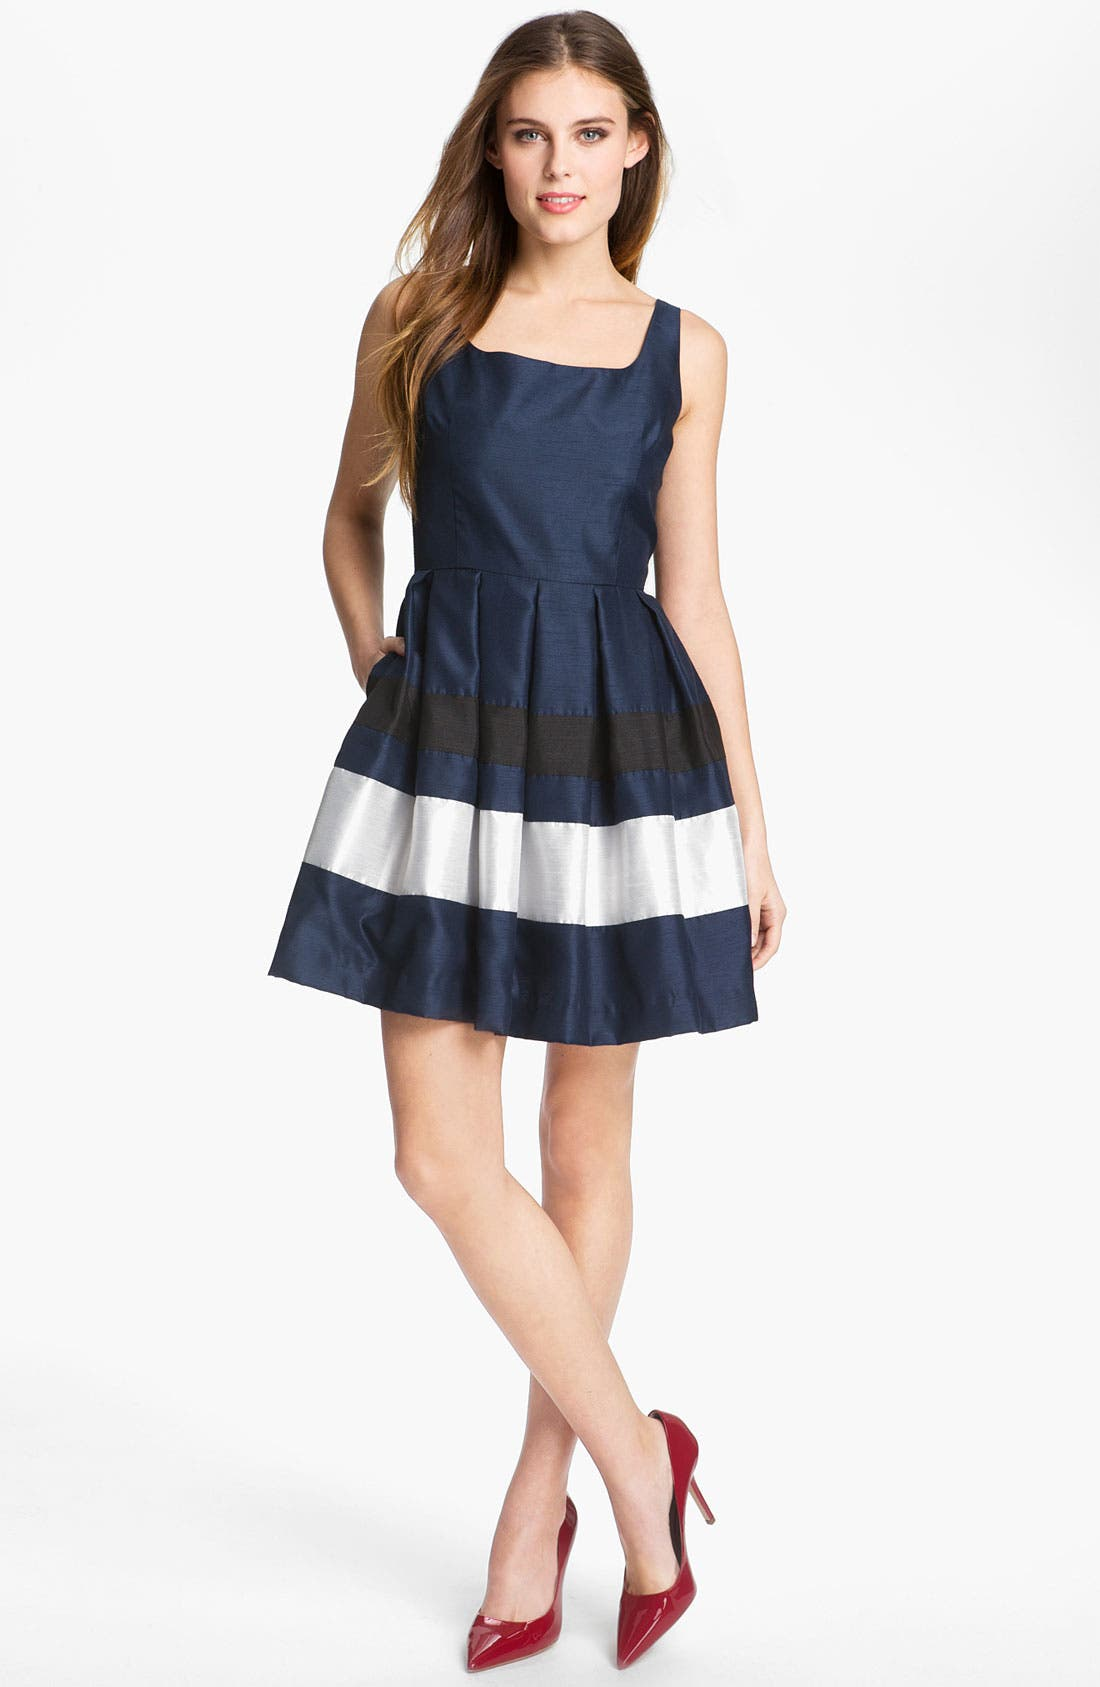 Main Image - Taylor Dresses Stripe Fit & Flare Dress